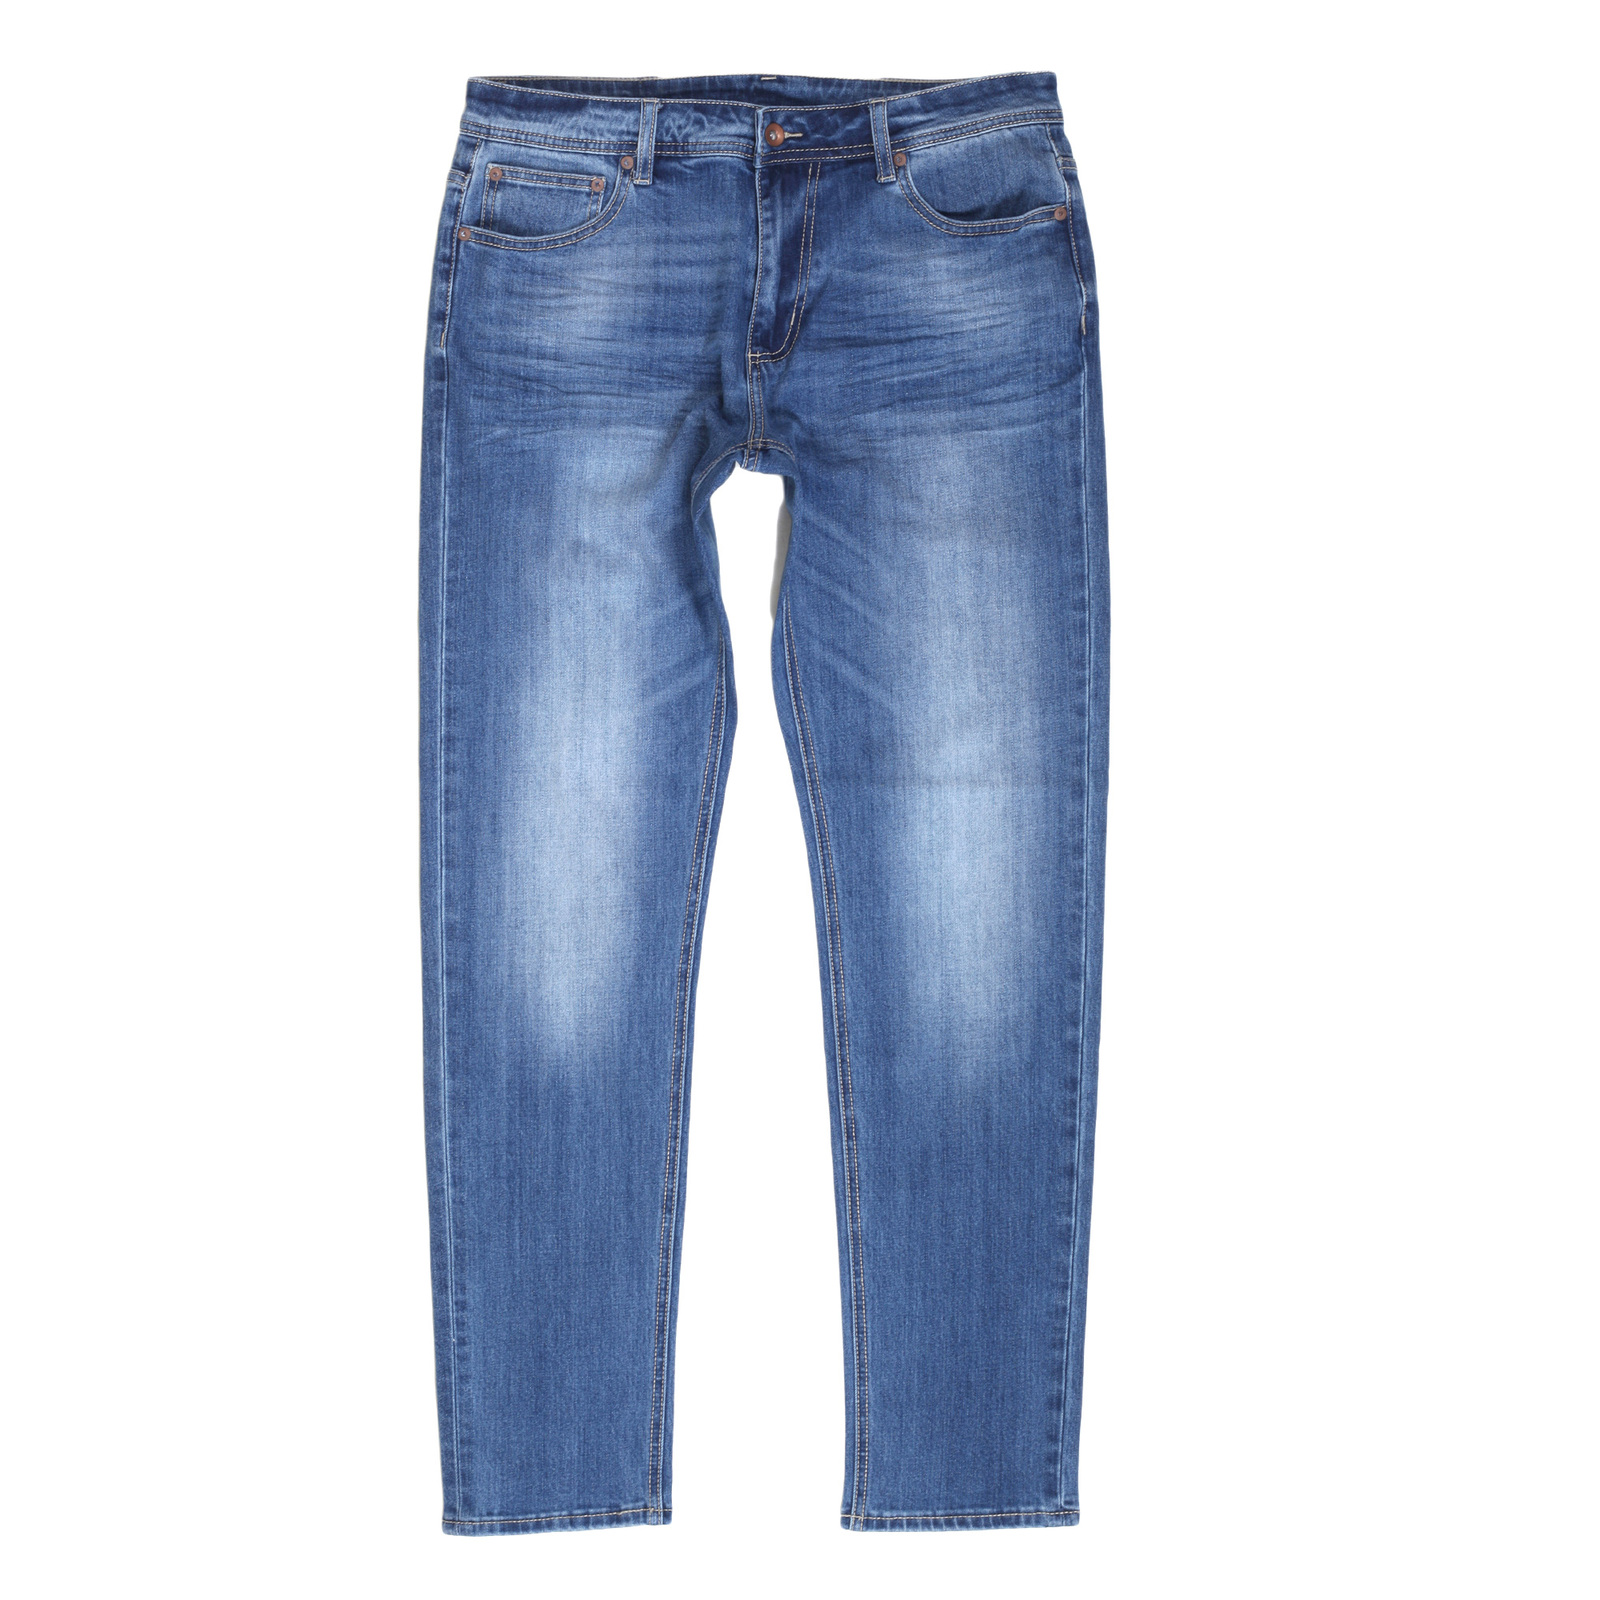 0e3c713e Slim Fit Jeans for Men in Light Blue Wash by RMC Jeans